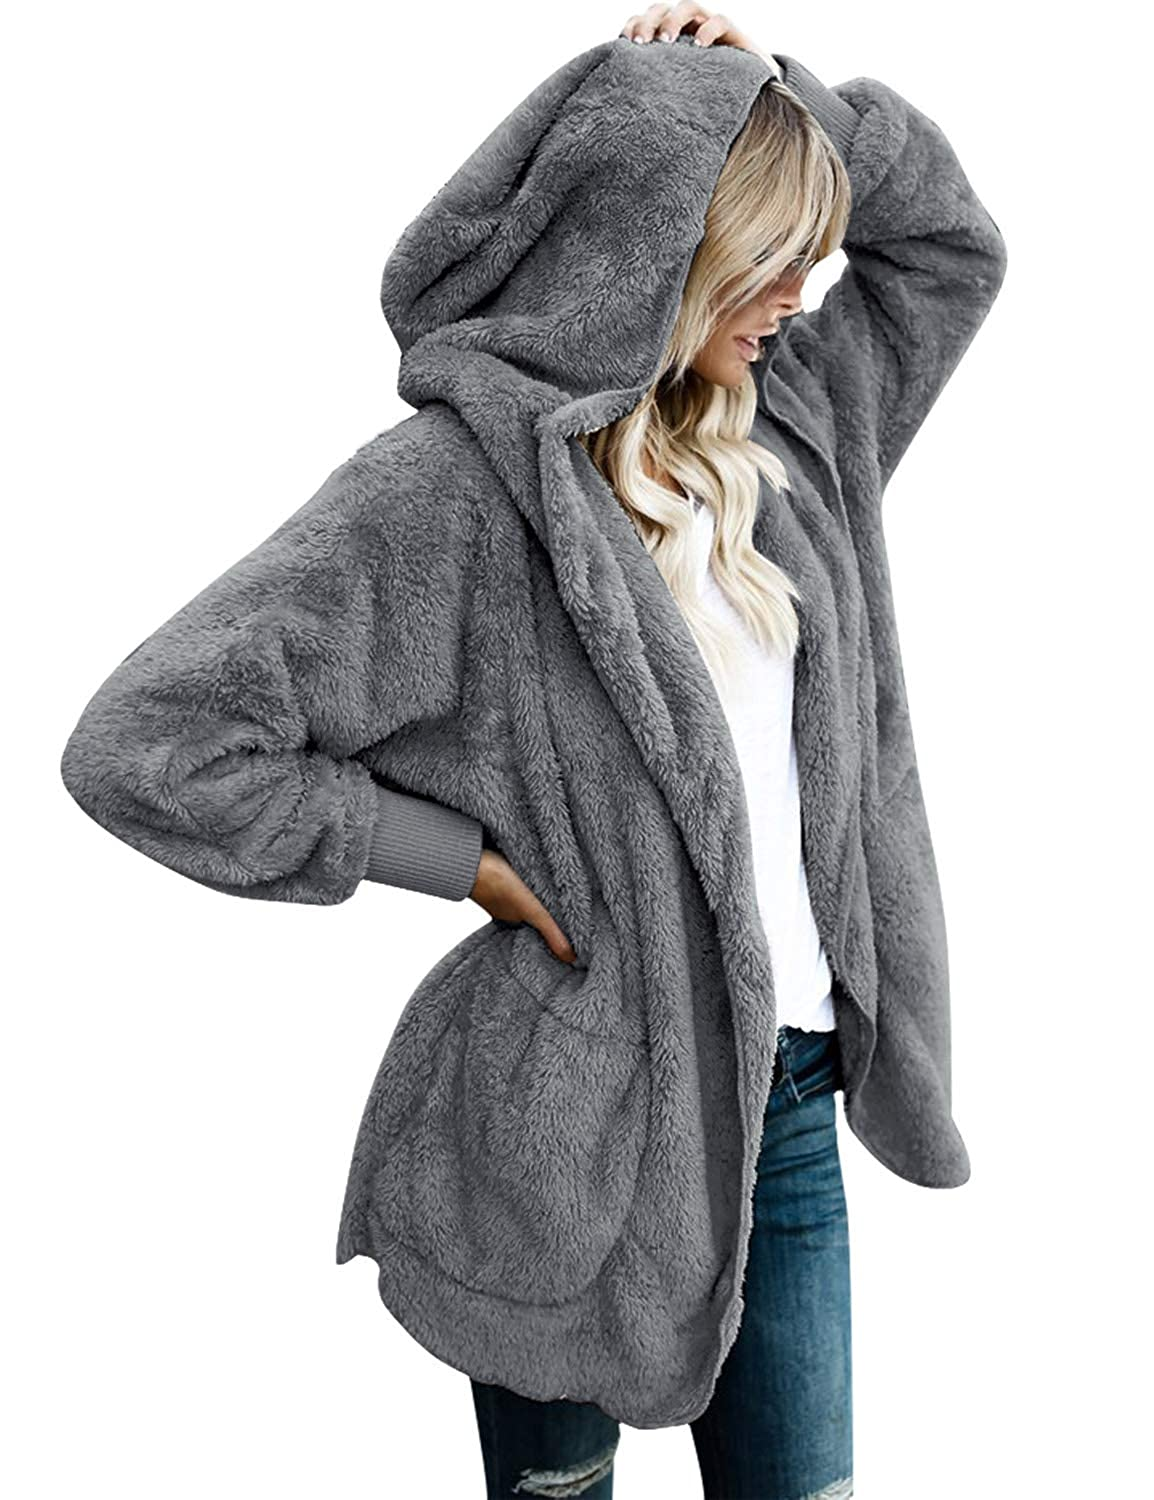 1015e0b06c Indulge in comfort and fashion with this women s open front cardigan. Cozy  and stretchable fuzzy material provides enough soft touch and warmth you  need in ...